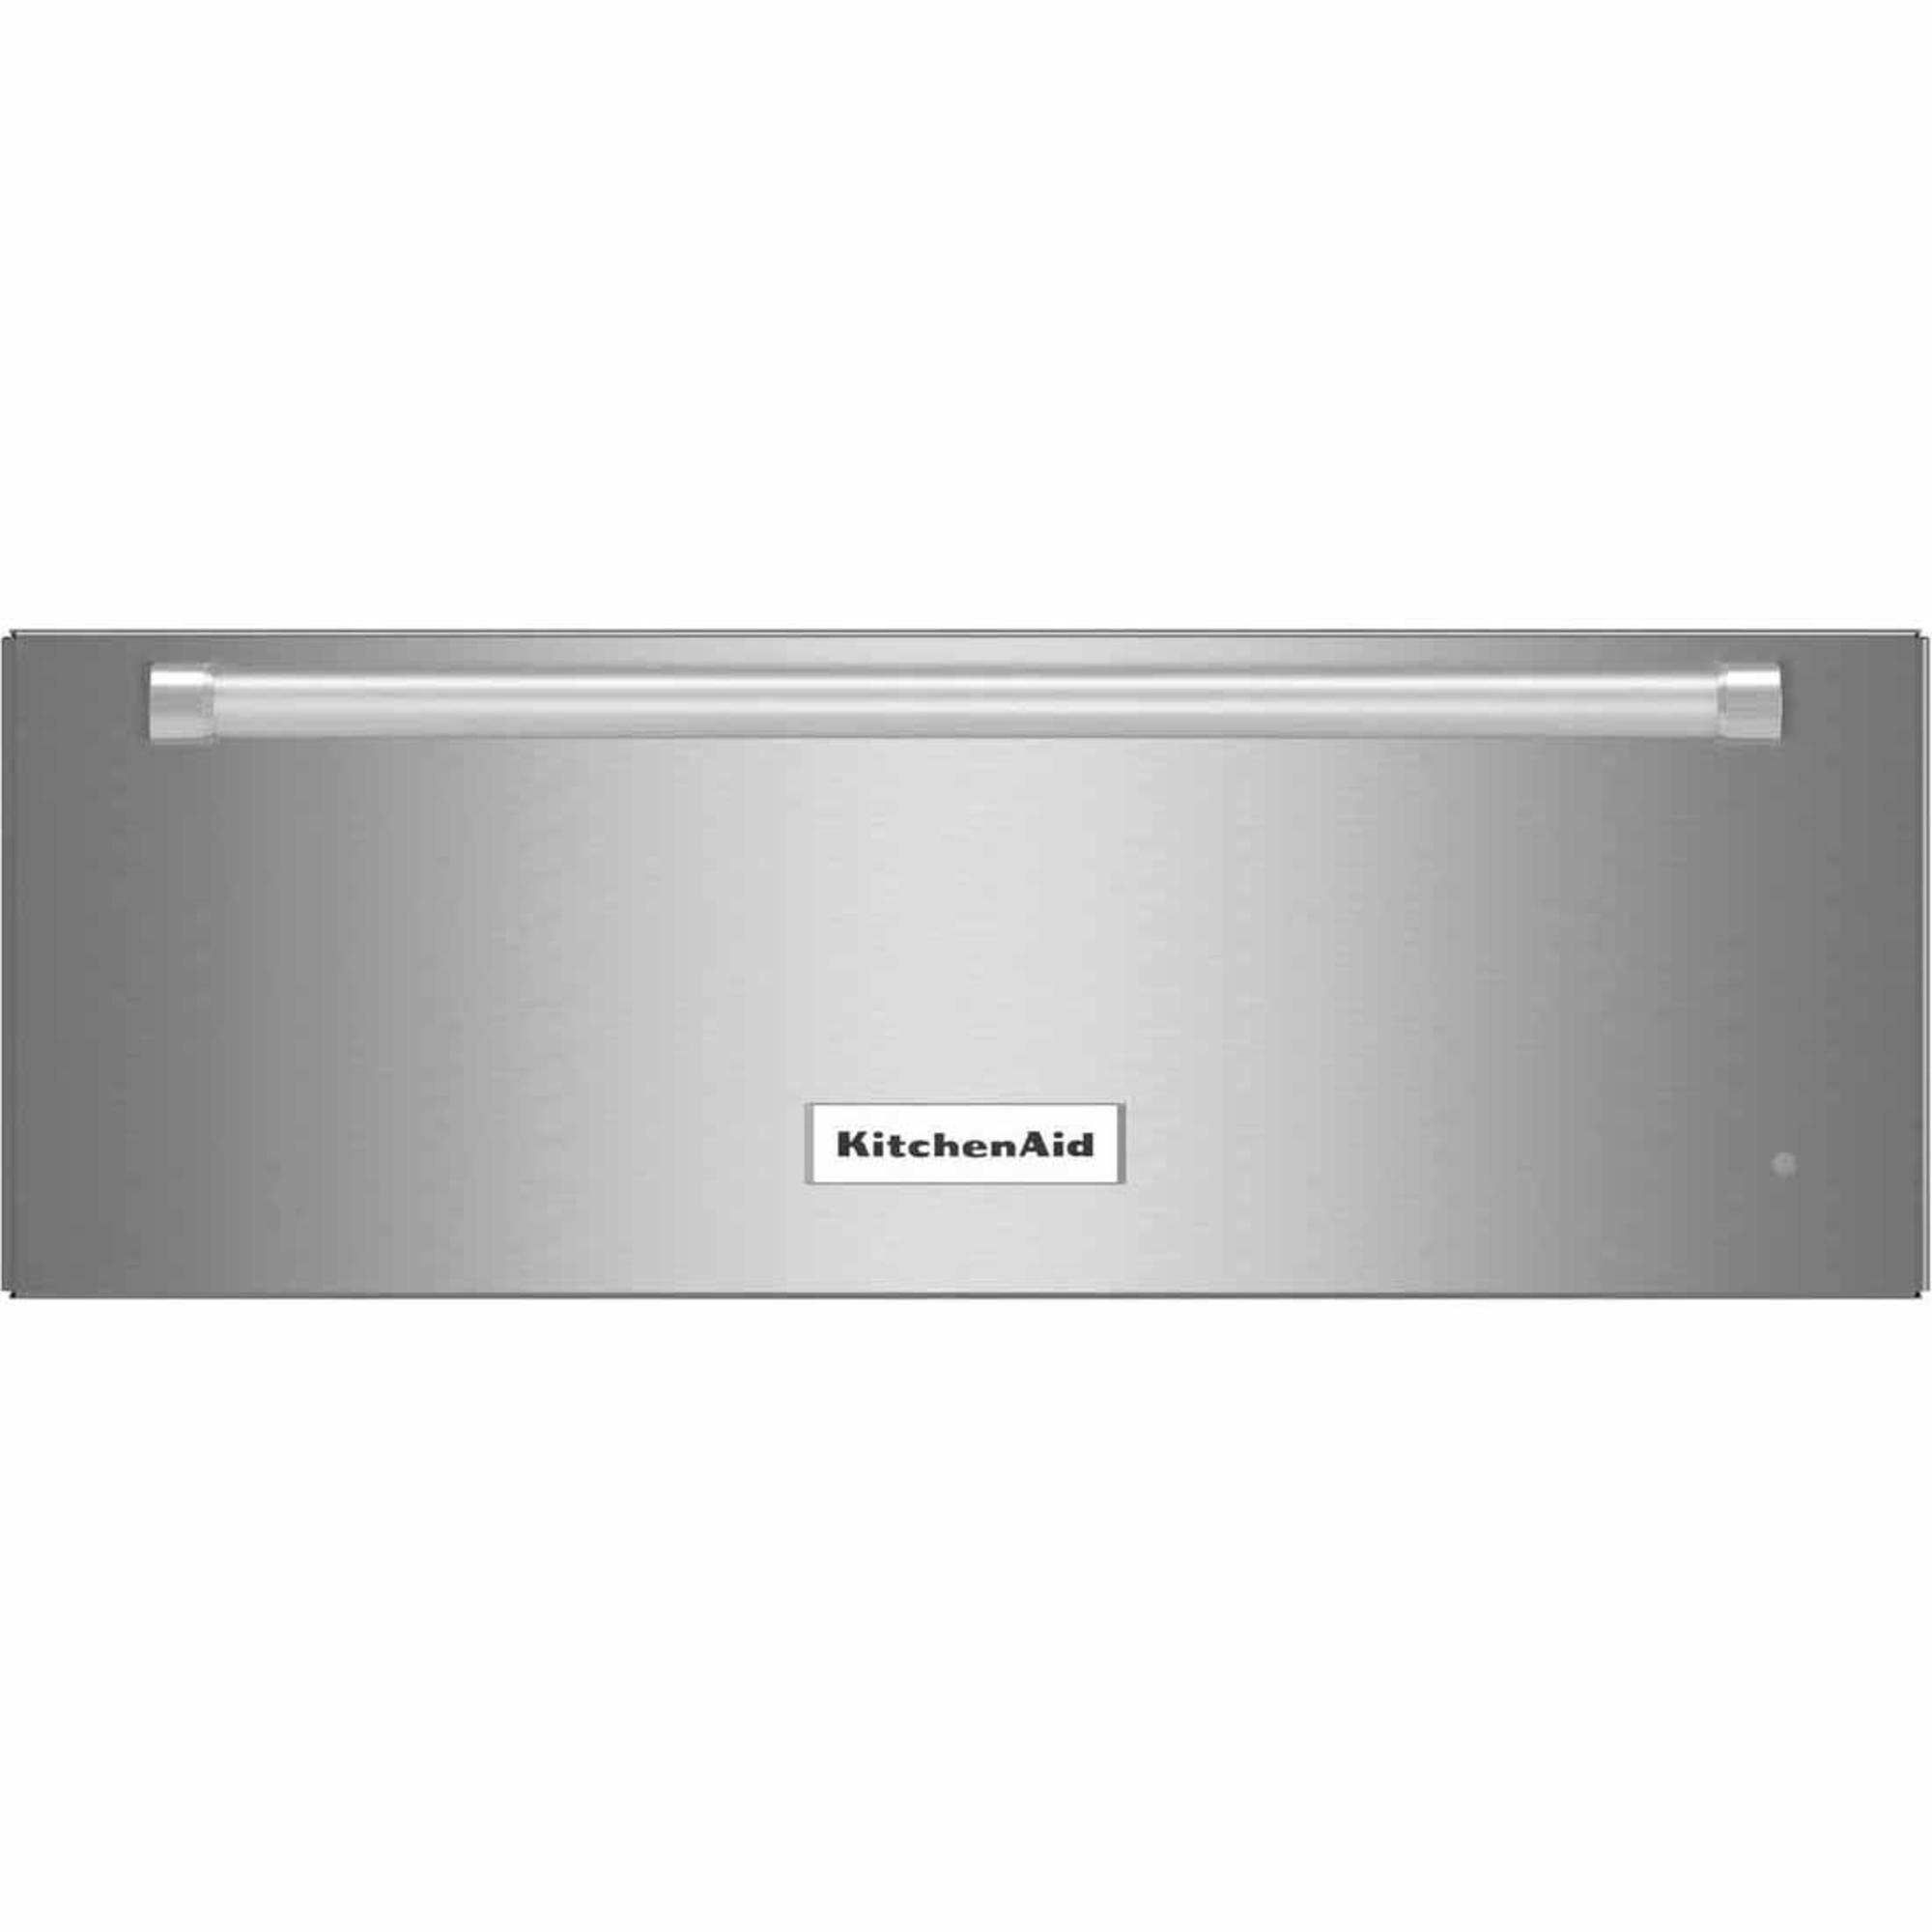 KitchenAid 30 Warming Drawer - Stainless Steel